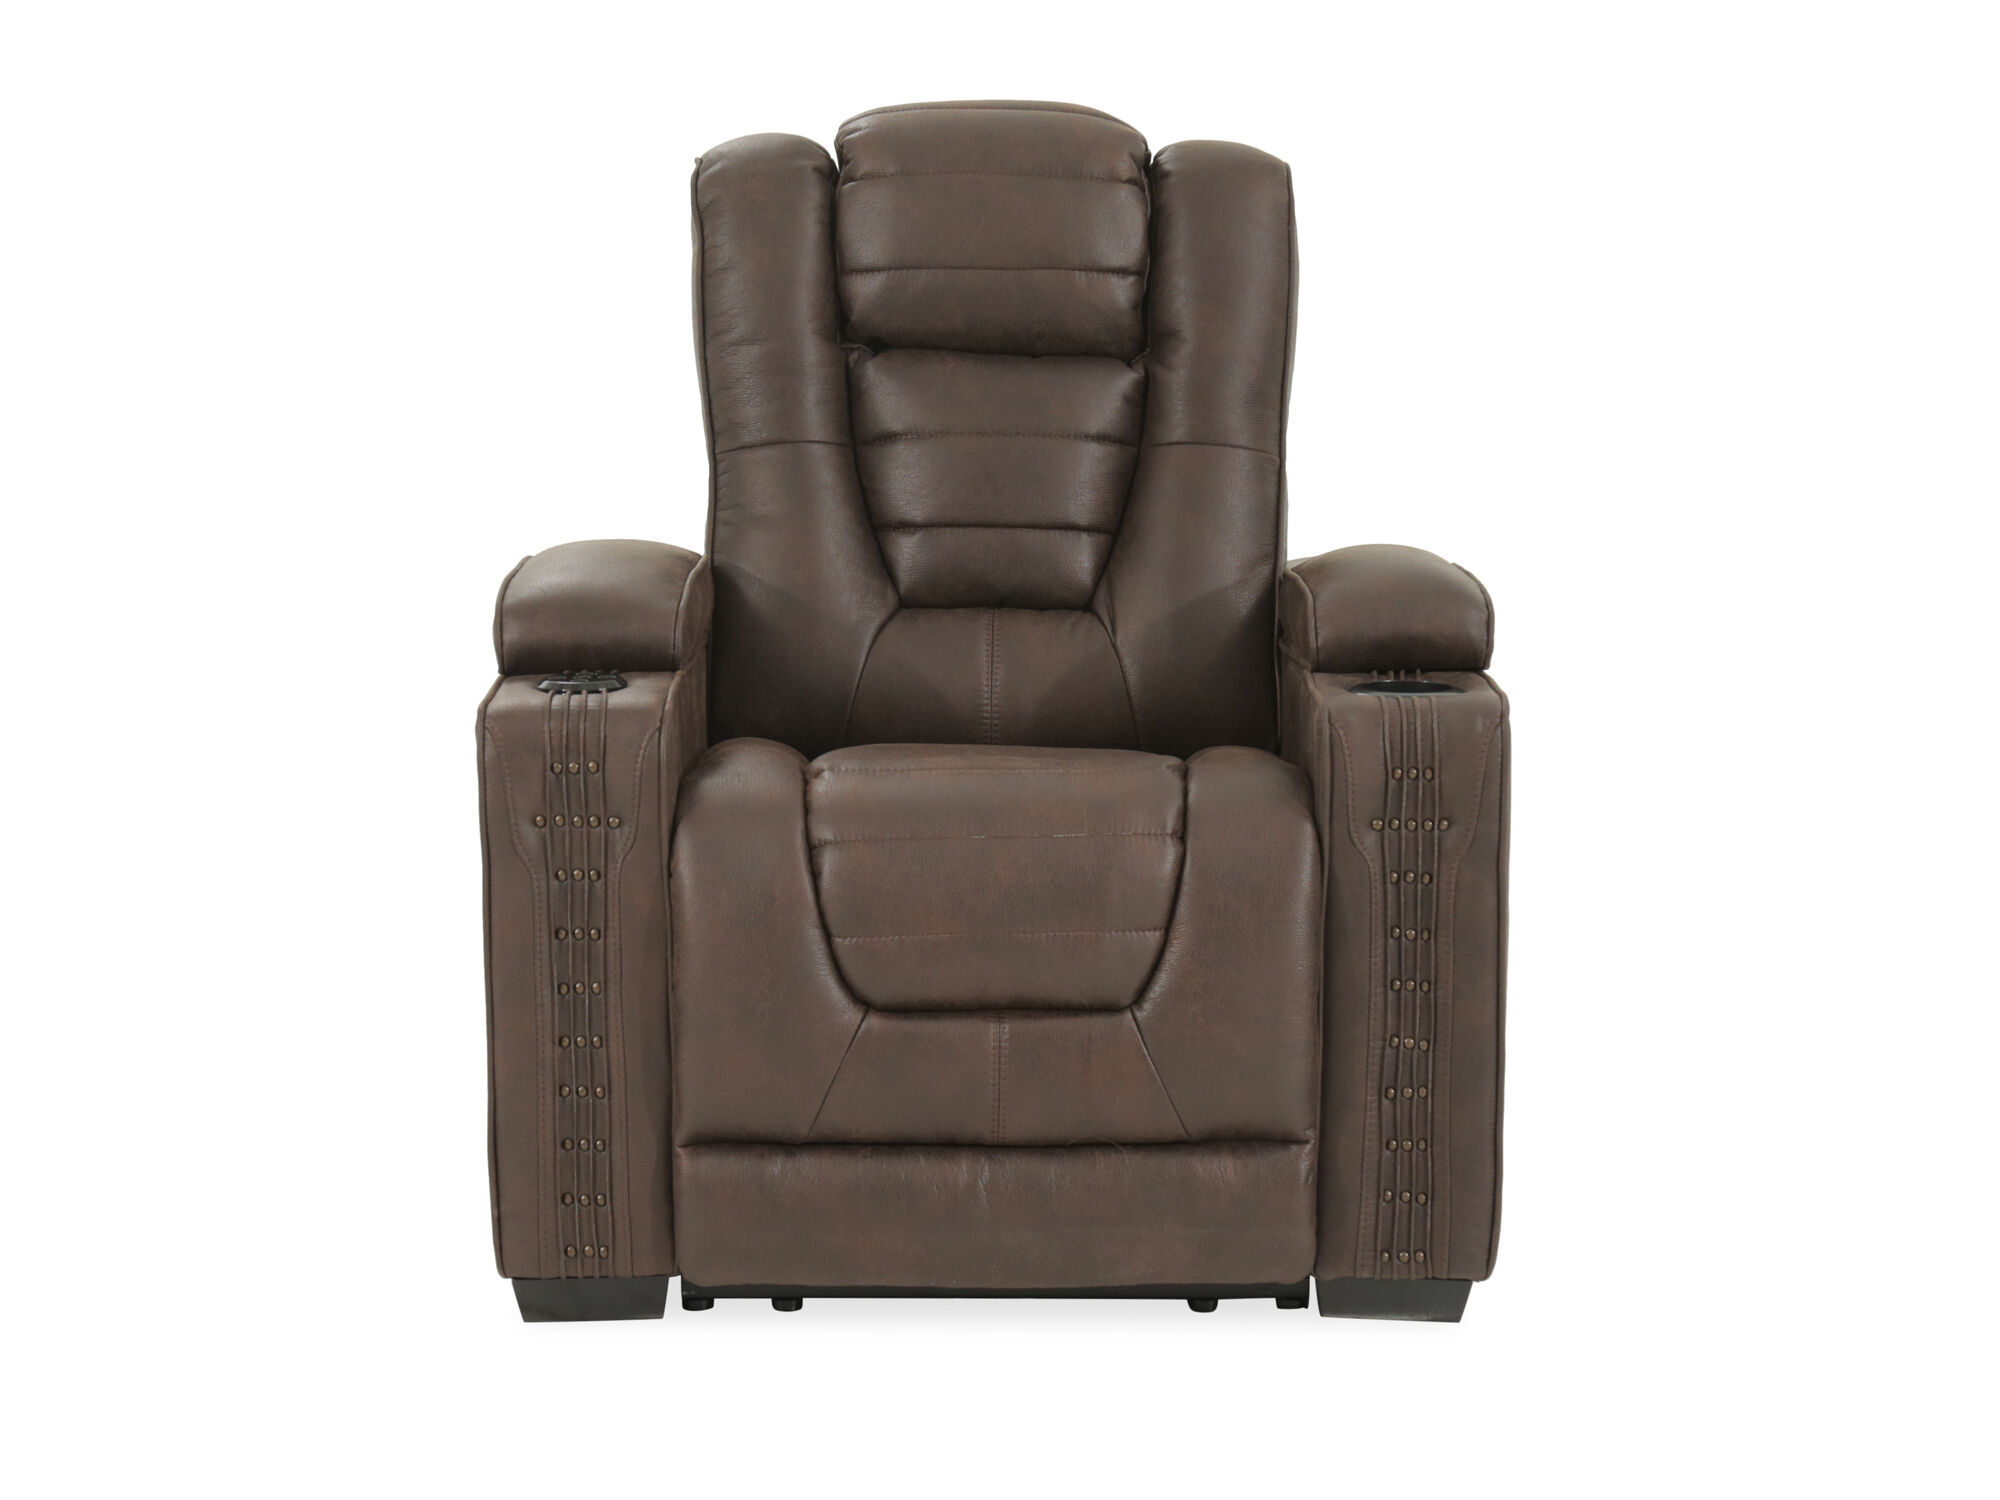 Prime Resources Big Chief Brown Power Recliner ...  sc 1 st  Mathis Brothers & Living Room Furniture Stores | Mathis Brothers islam-shia.org